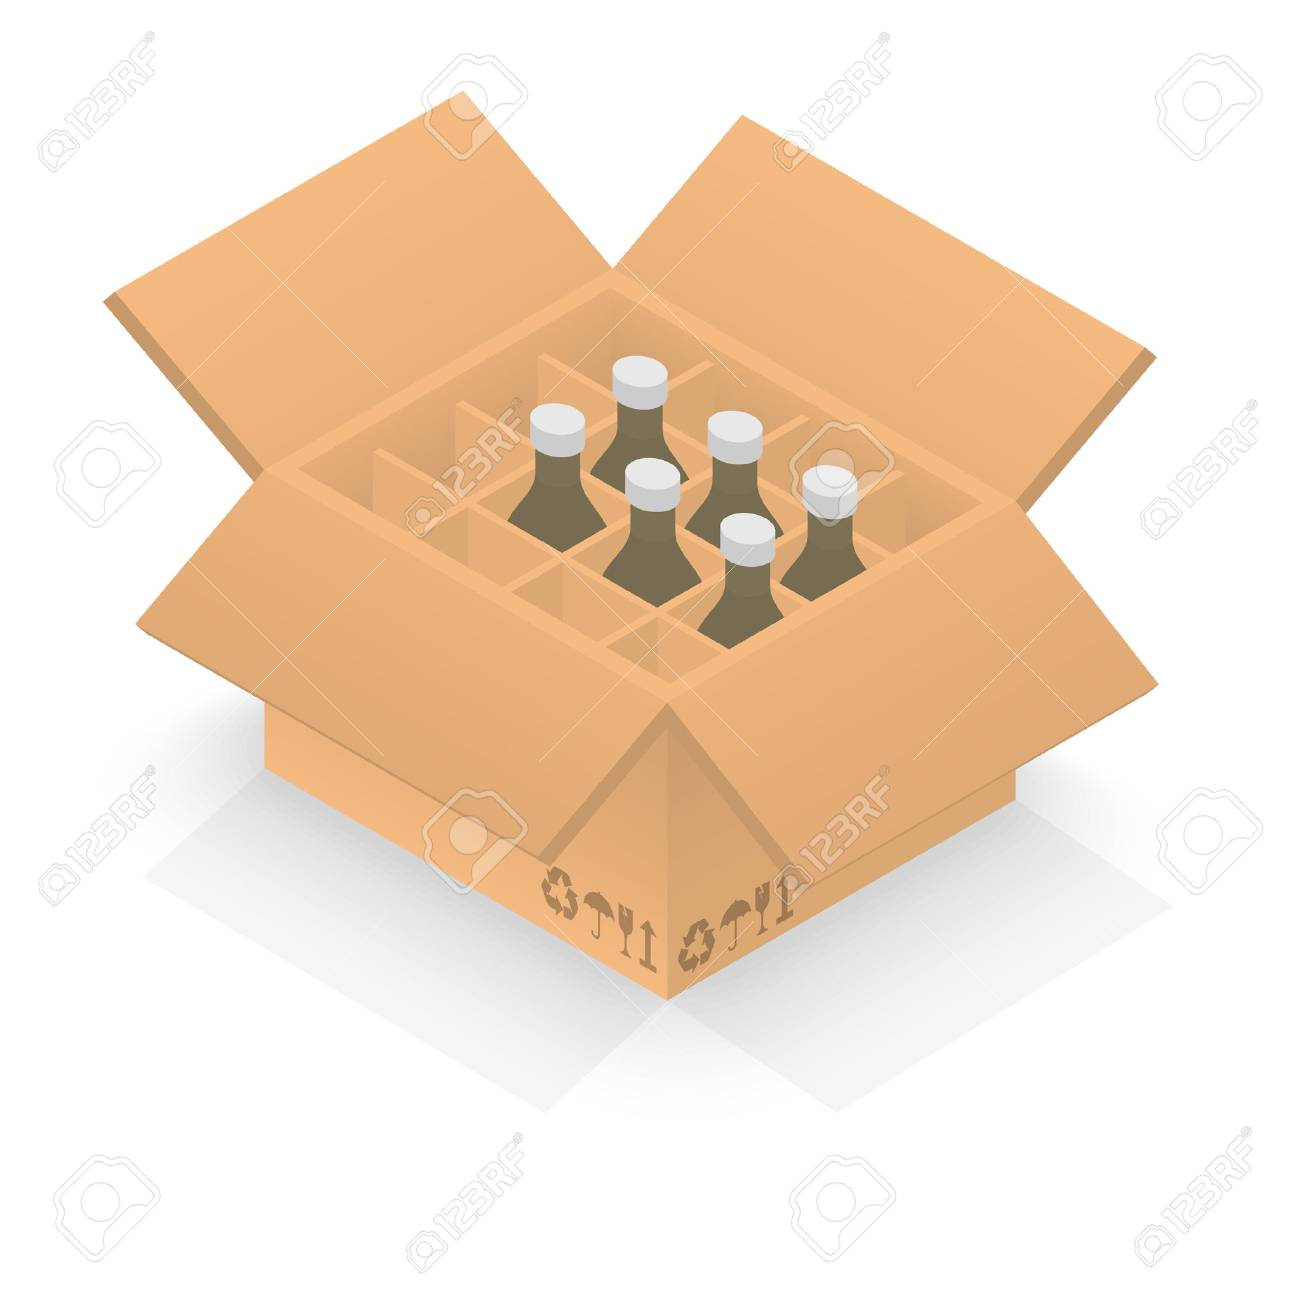 Isometric cardboard box with group bottles - 51000255